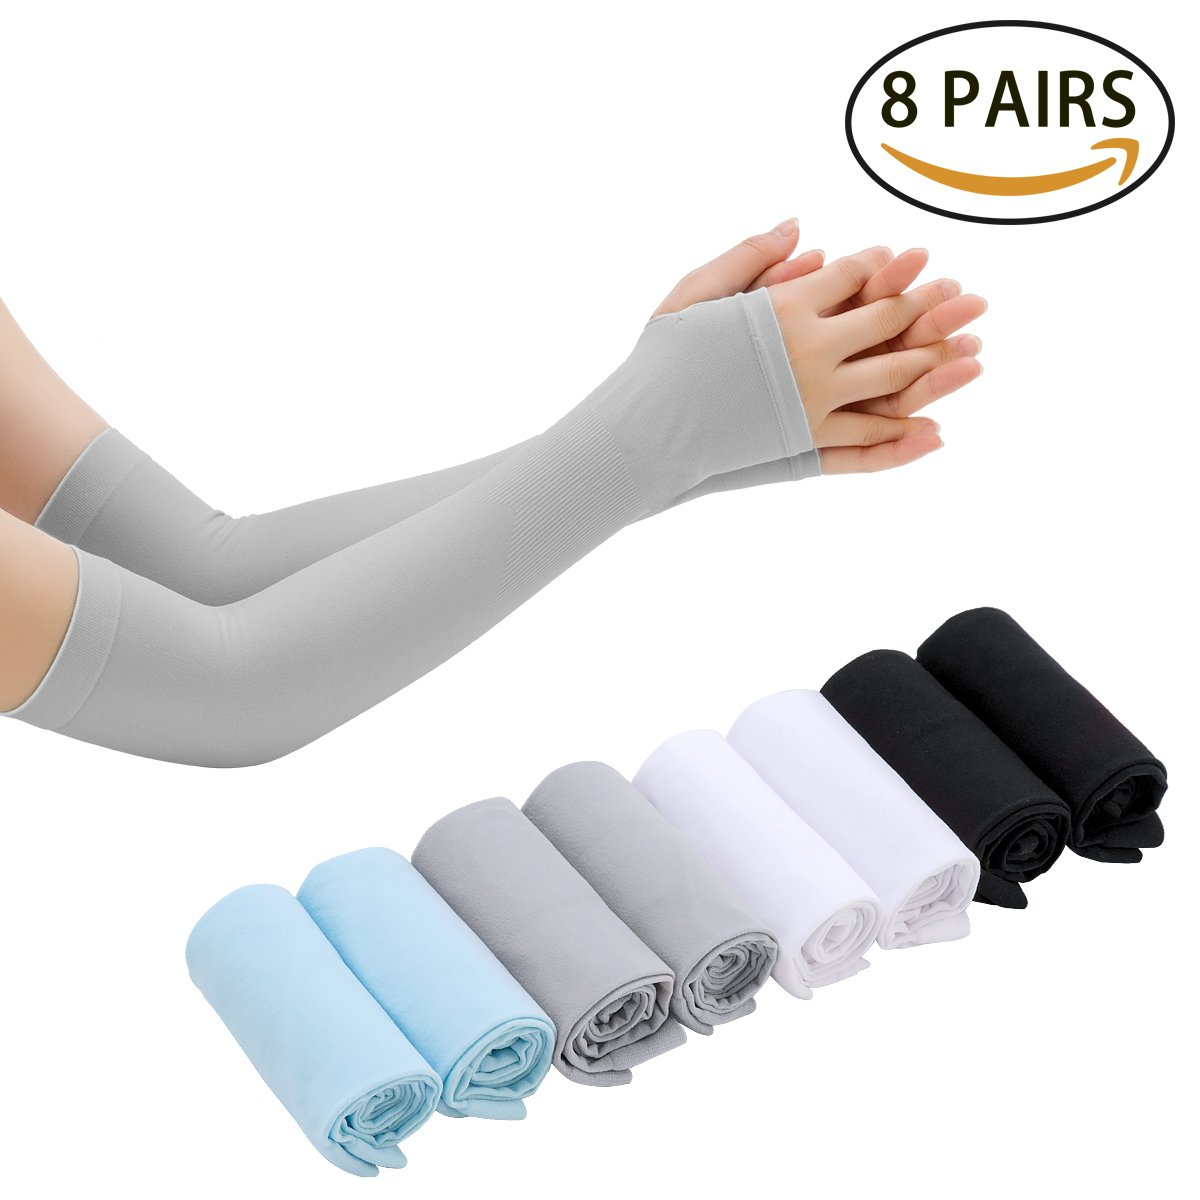 LISALIFE UV Sun Protection Cooling Arm Sleeves for Men & Women - Unisex Sun Sleeves Cover With Thumb Hole for Cycling,Running,Driving,Basketball,Hiking,Golf & Outdoor Activities(8 Pairs) by LISALIFE (Image #1)